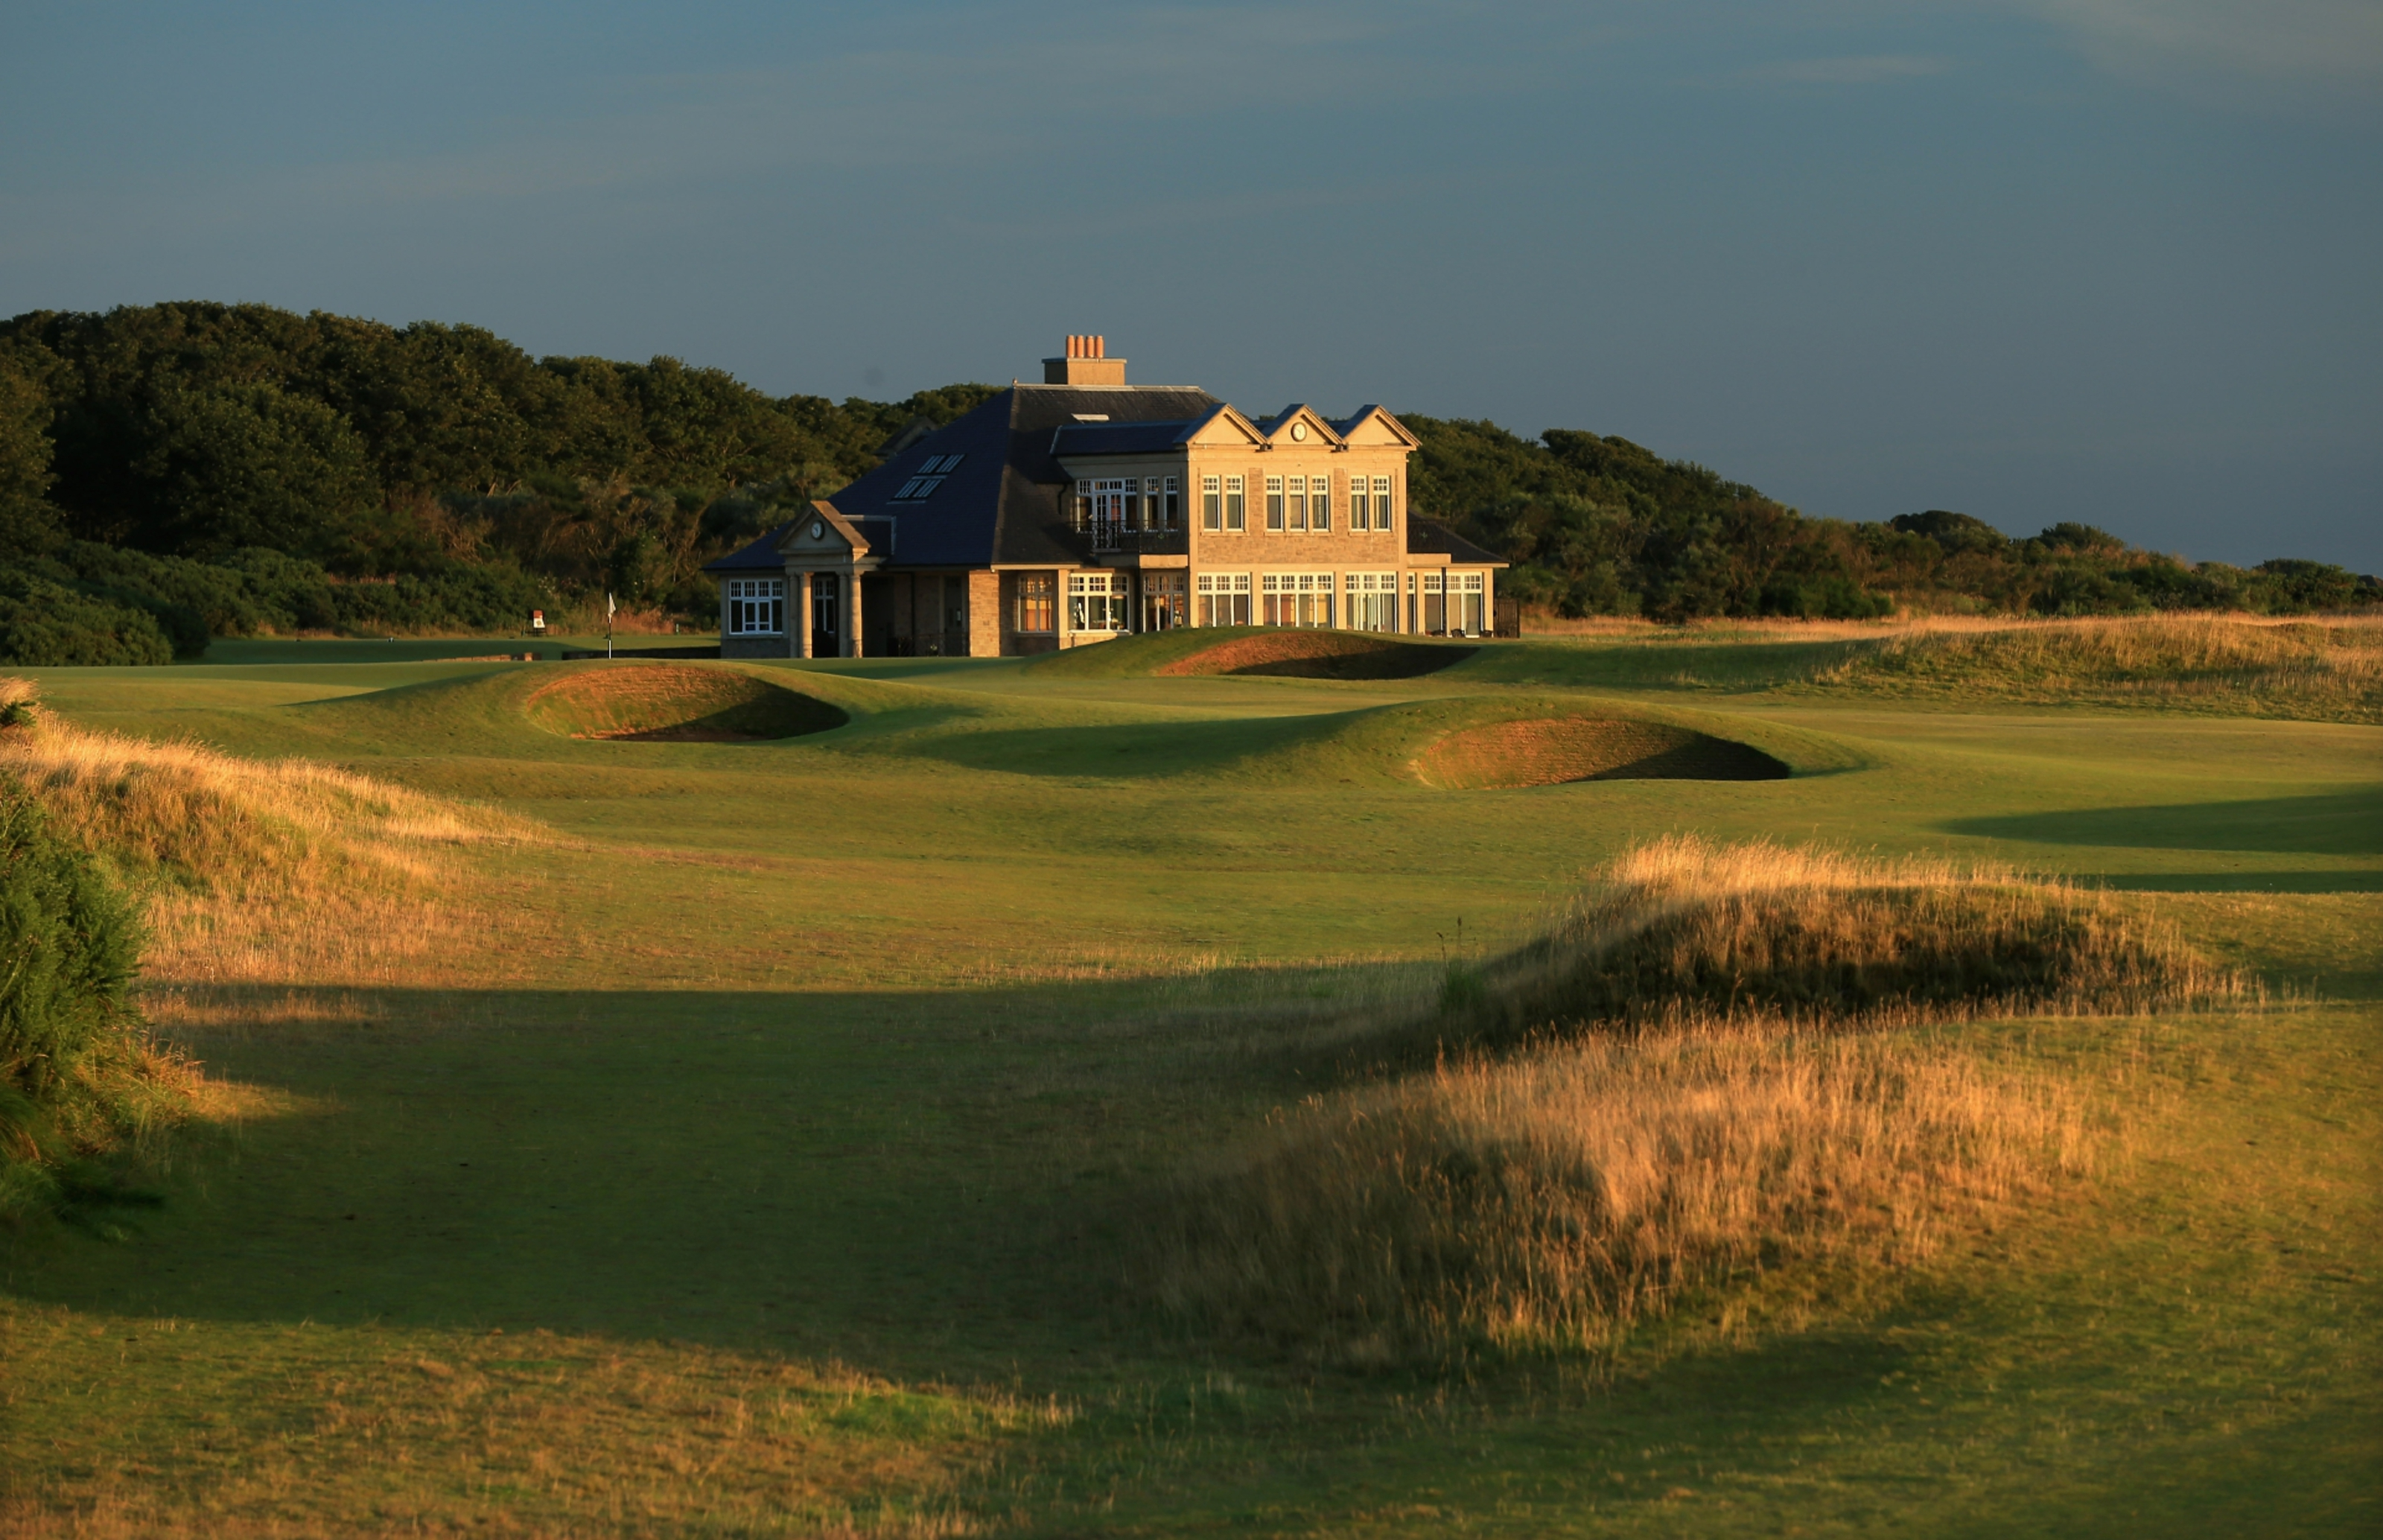 The tournament will debut at Kingsbarns this year